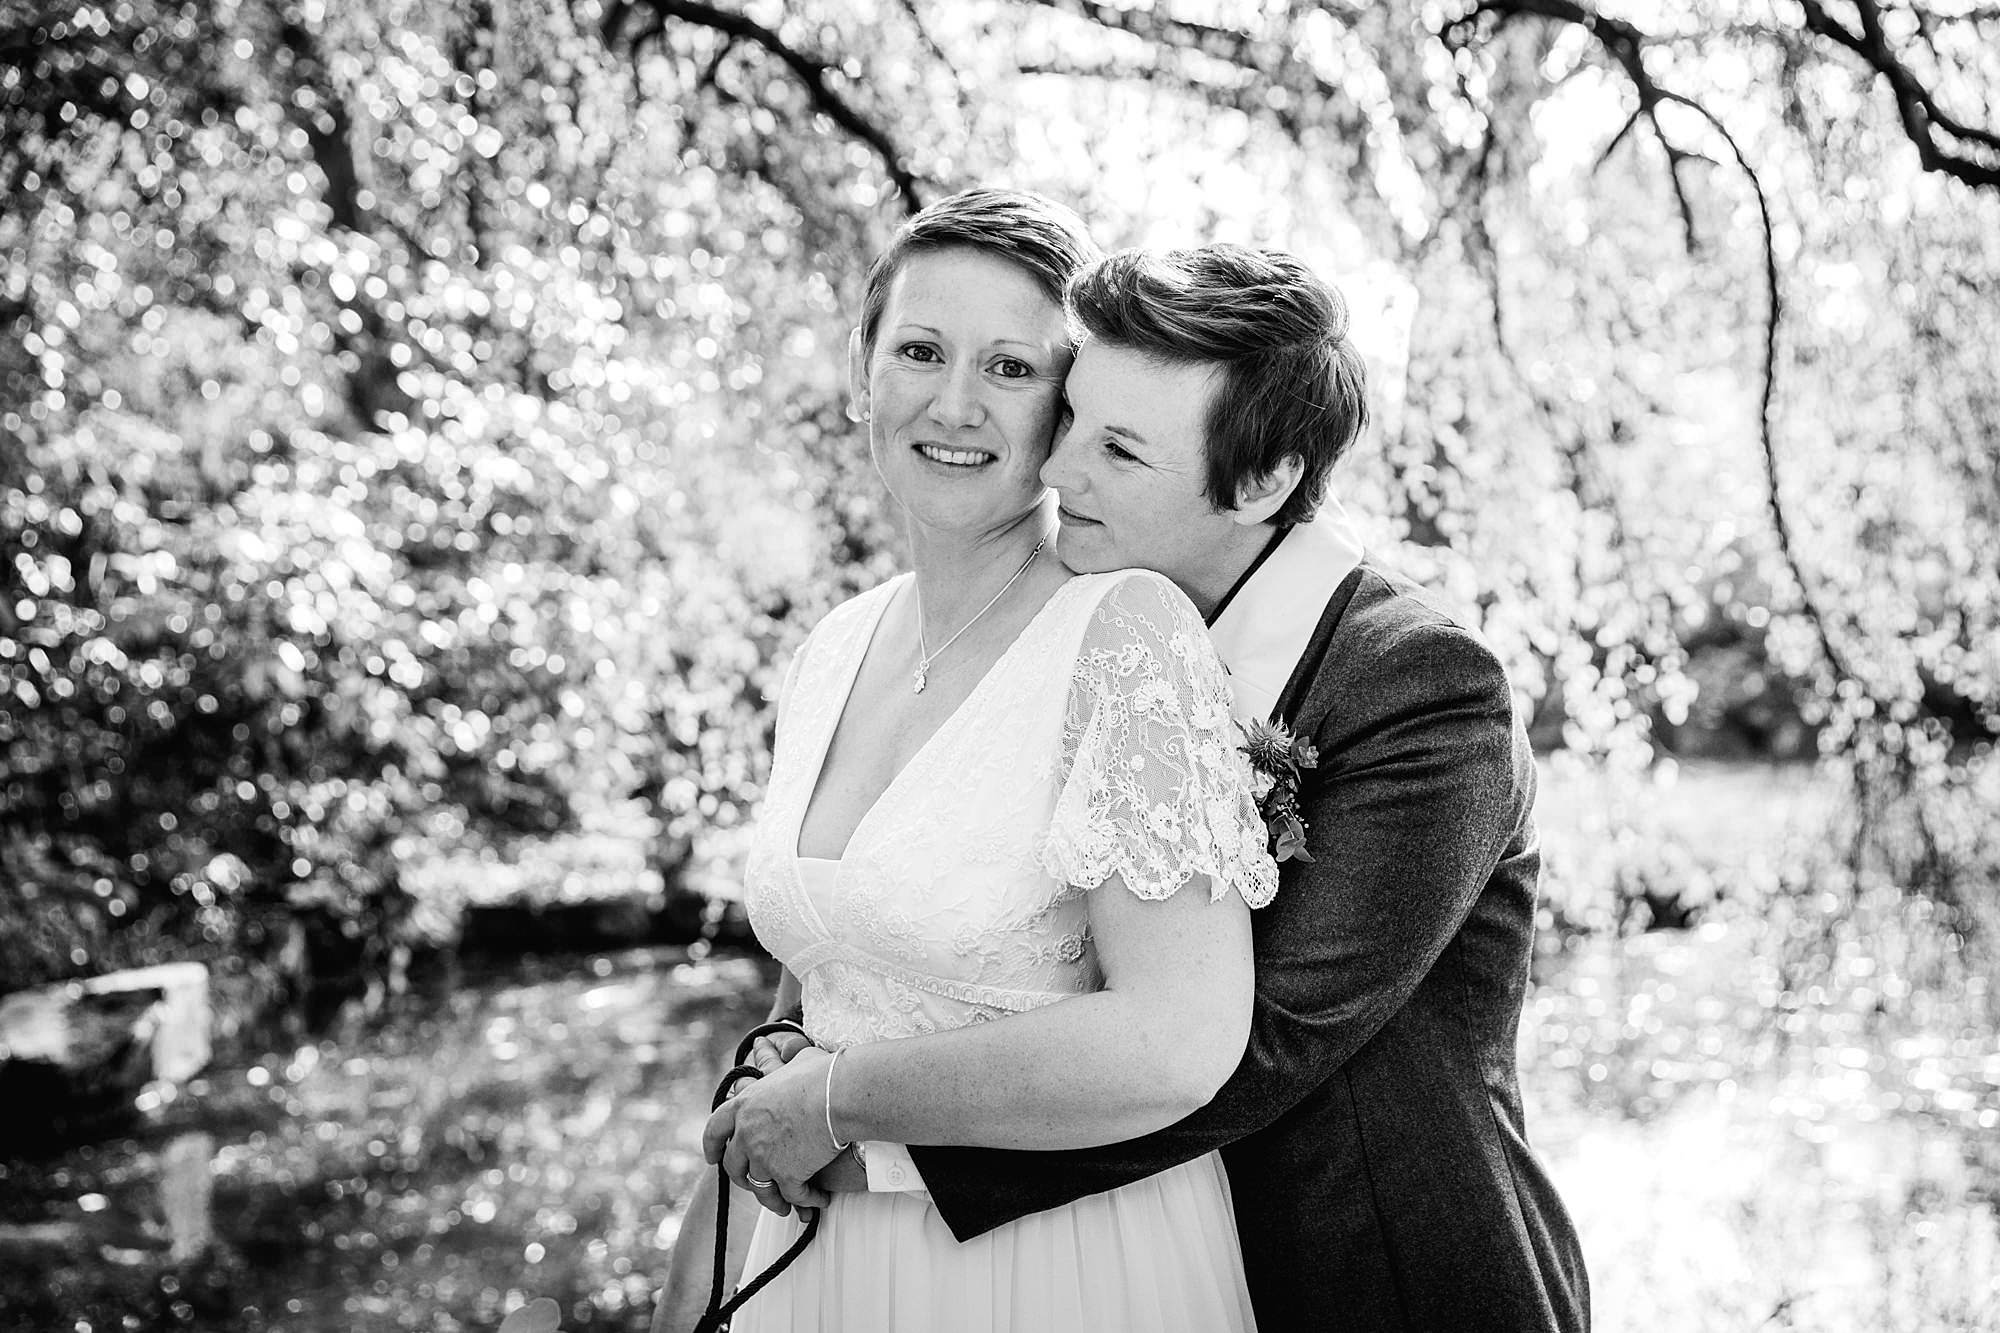 Twickenham wedding photography brides together under trees